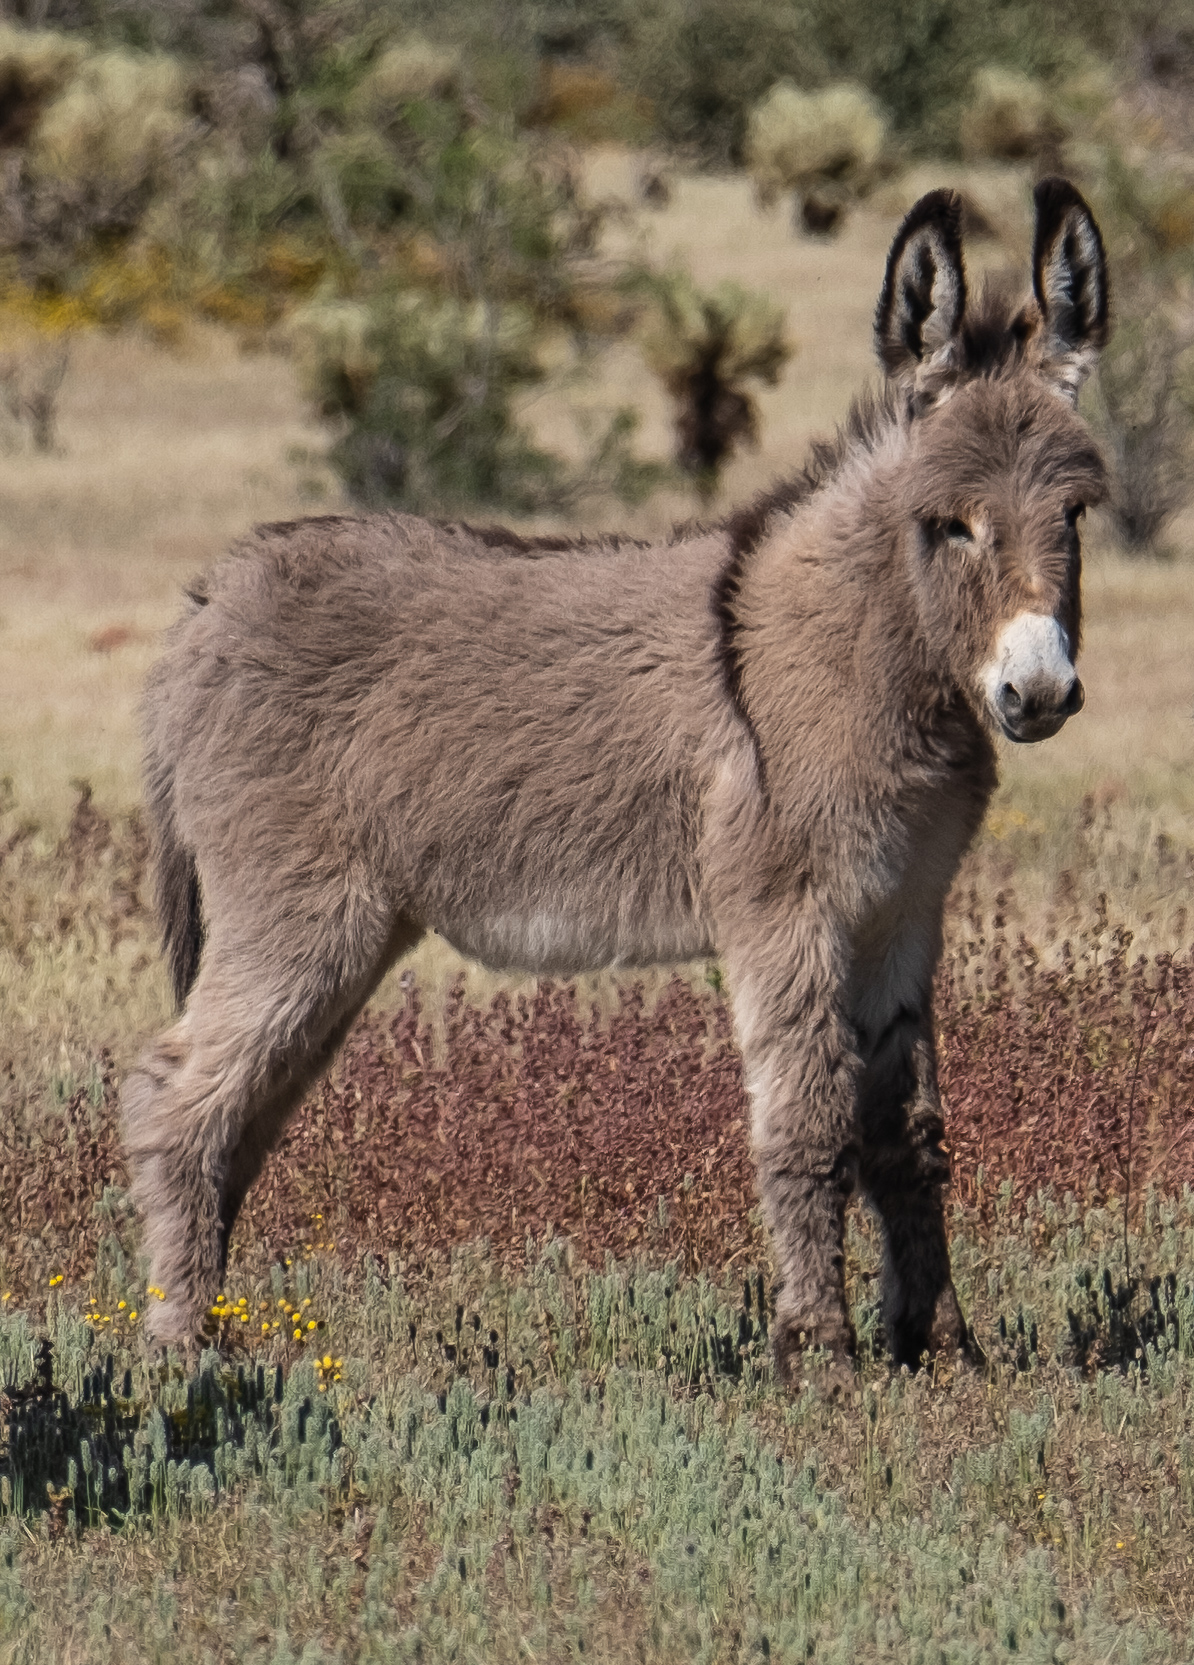 Arizona Wild Baby Burro, by Jim Green